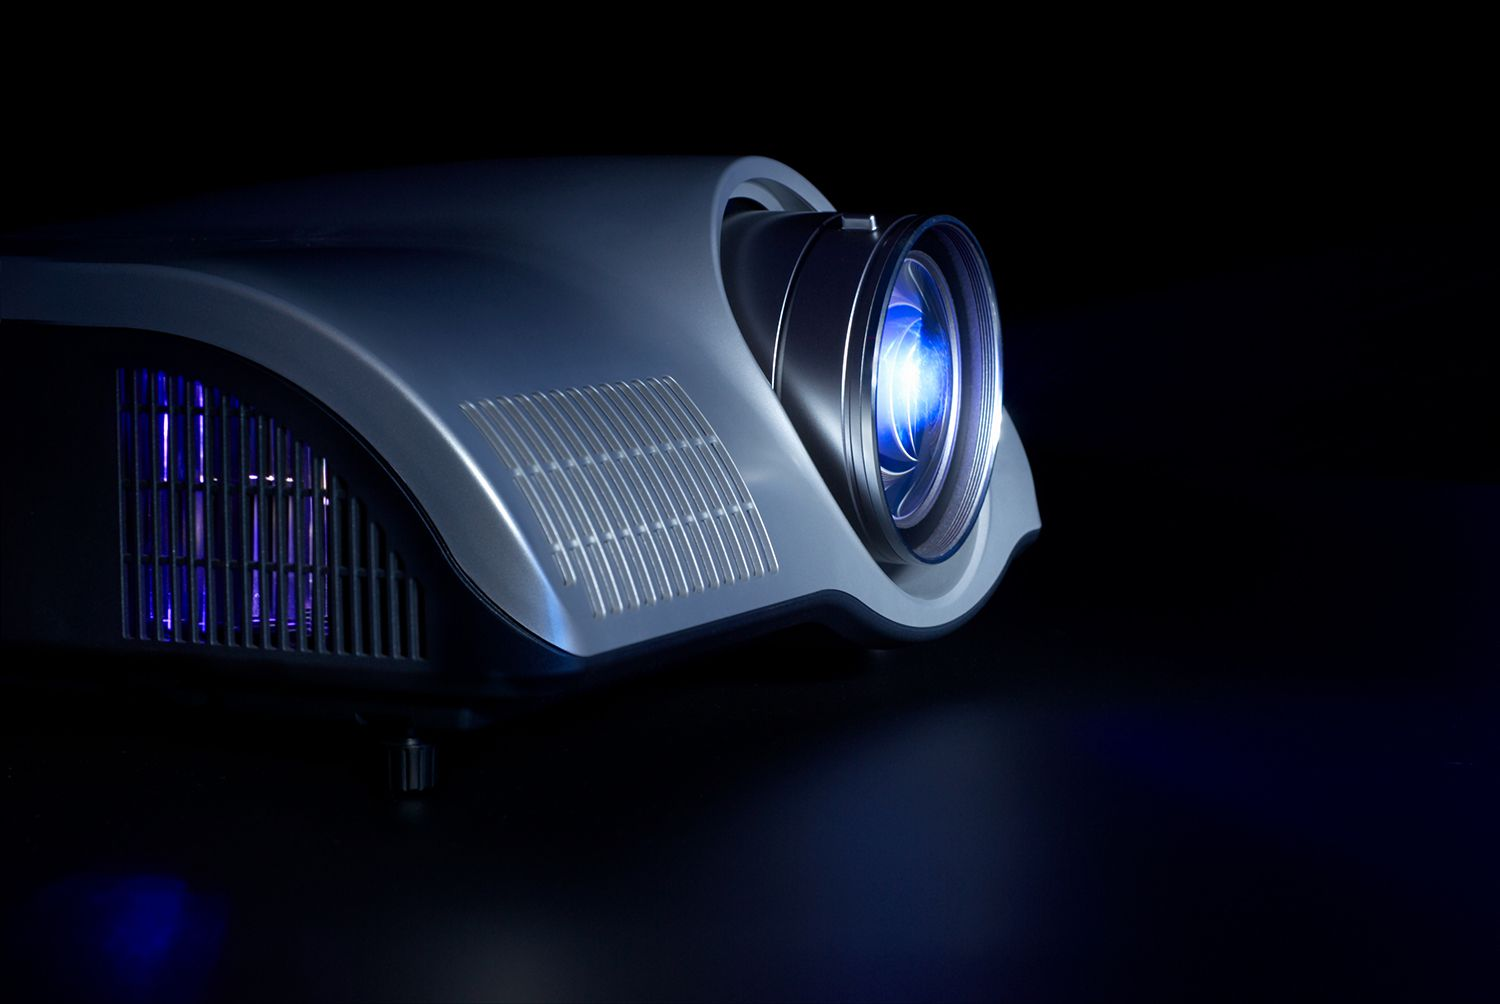 LCD home theater projector on black background.